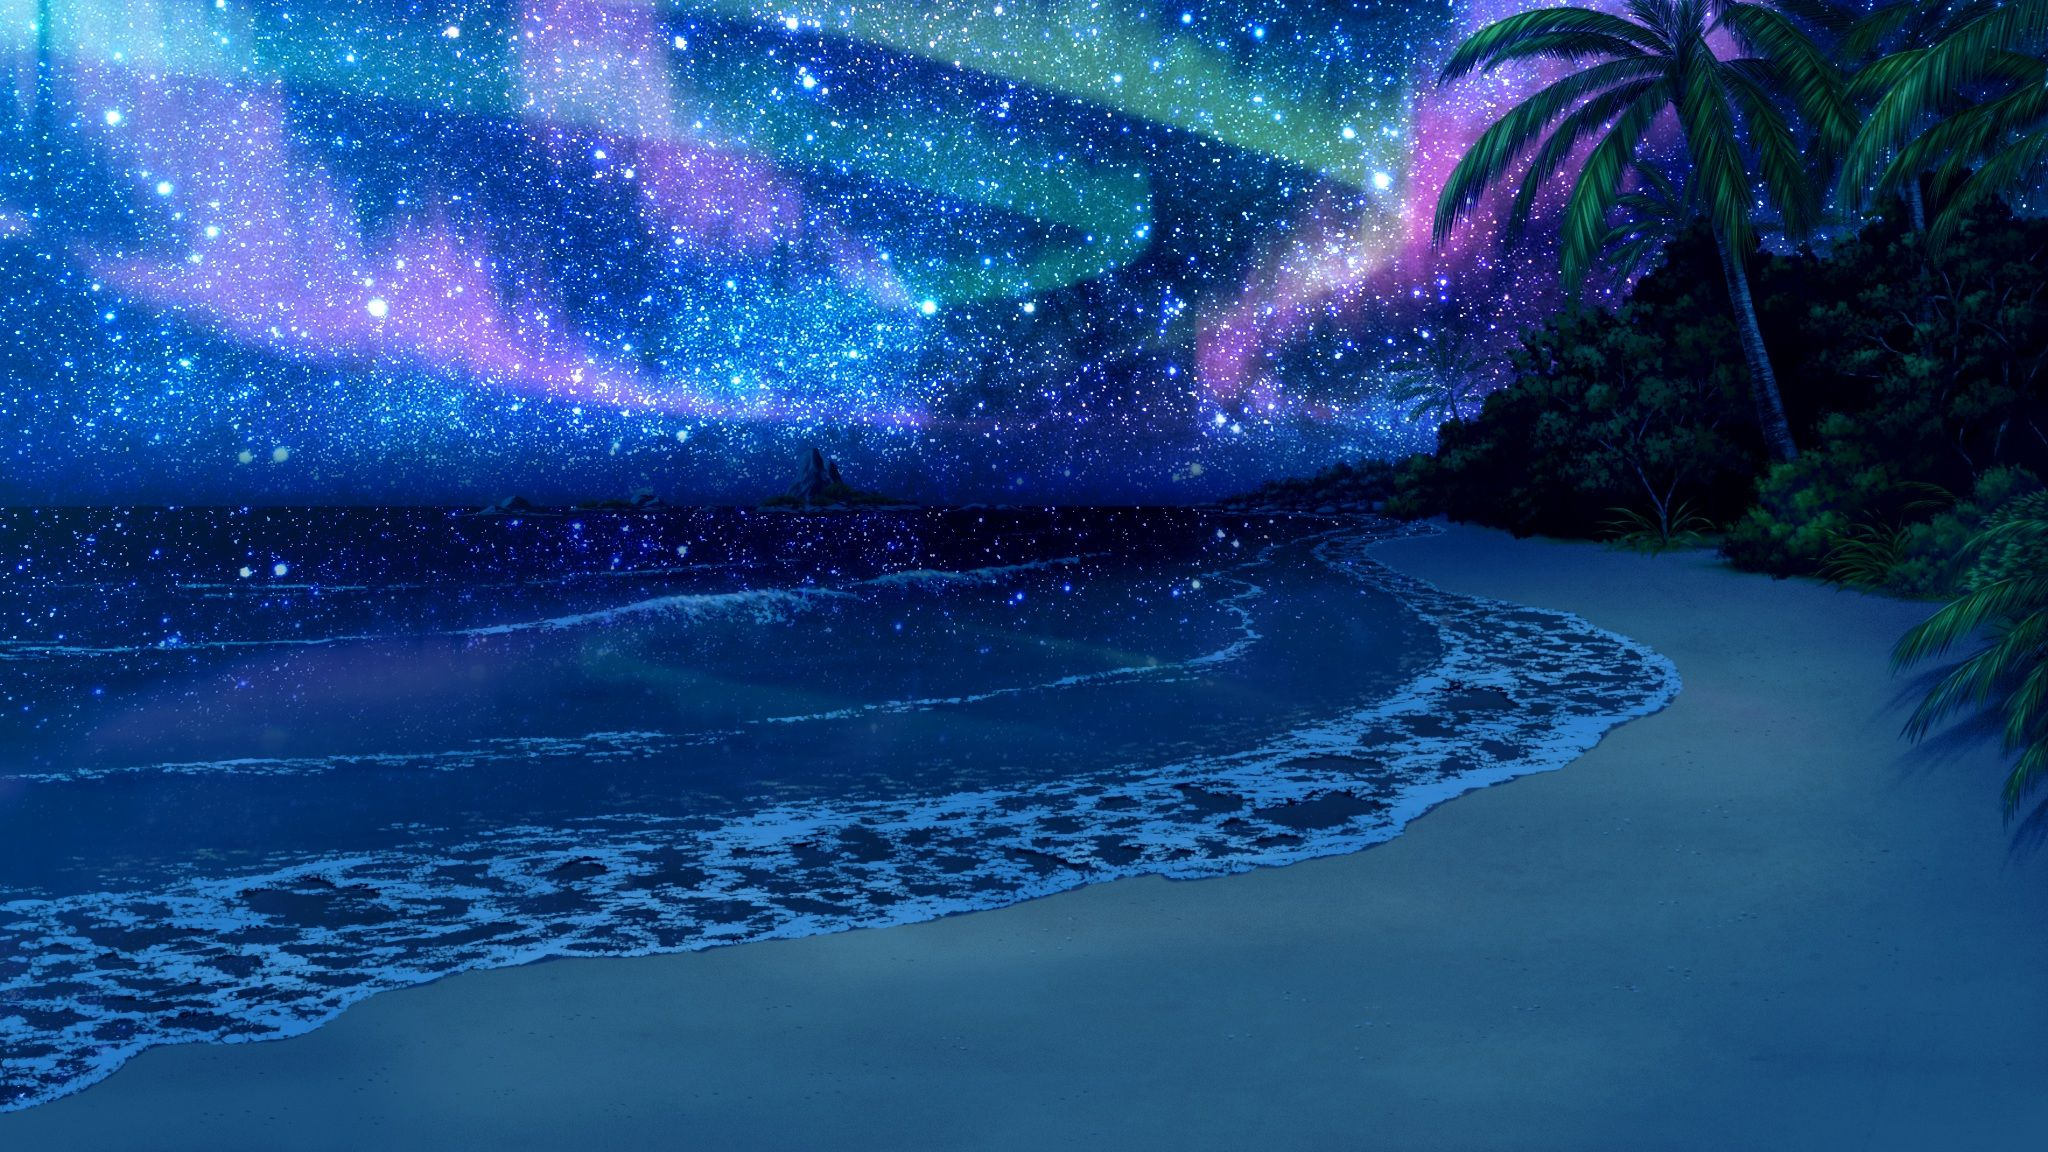 beach scenery at night wallpaper | fantasy | pinterest | beach